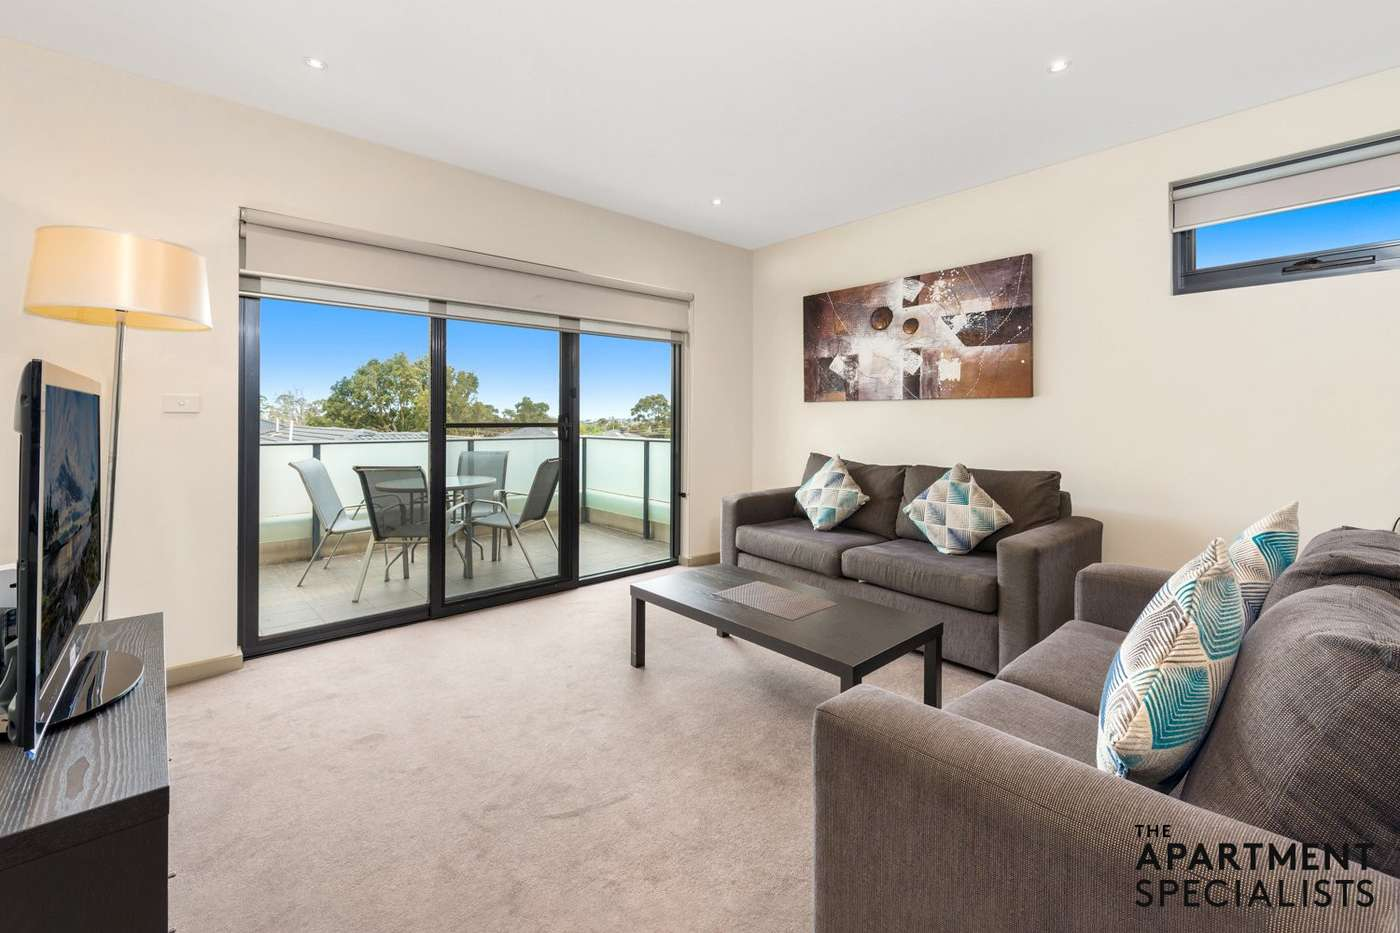 Main view of Homely apartment listing, 215/1 Frank Street, Glen Waverley, VIC 3150